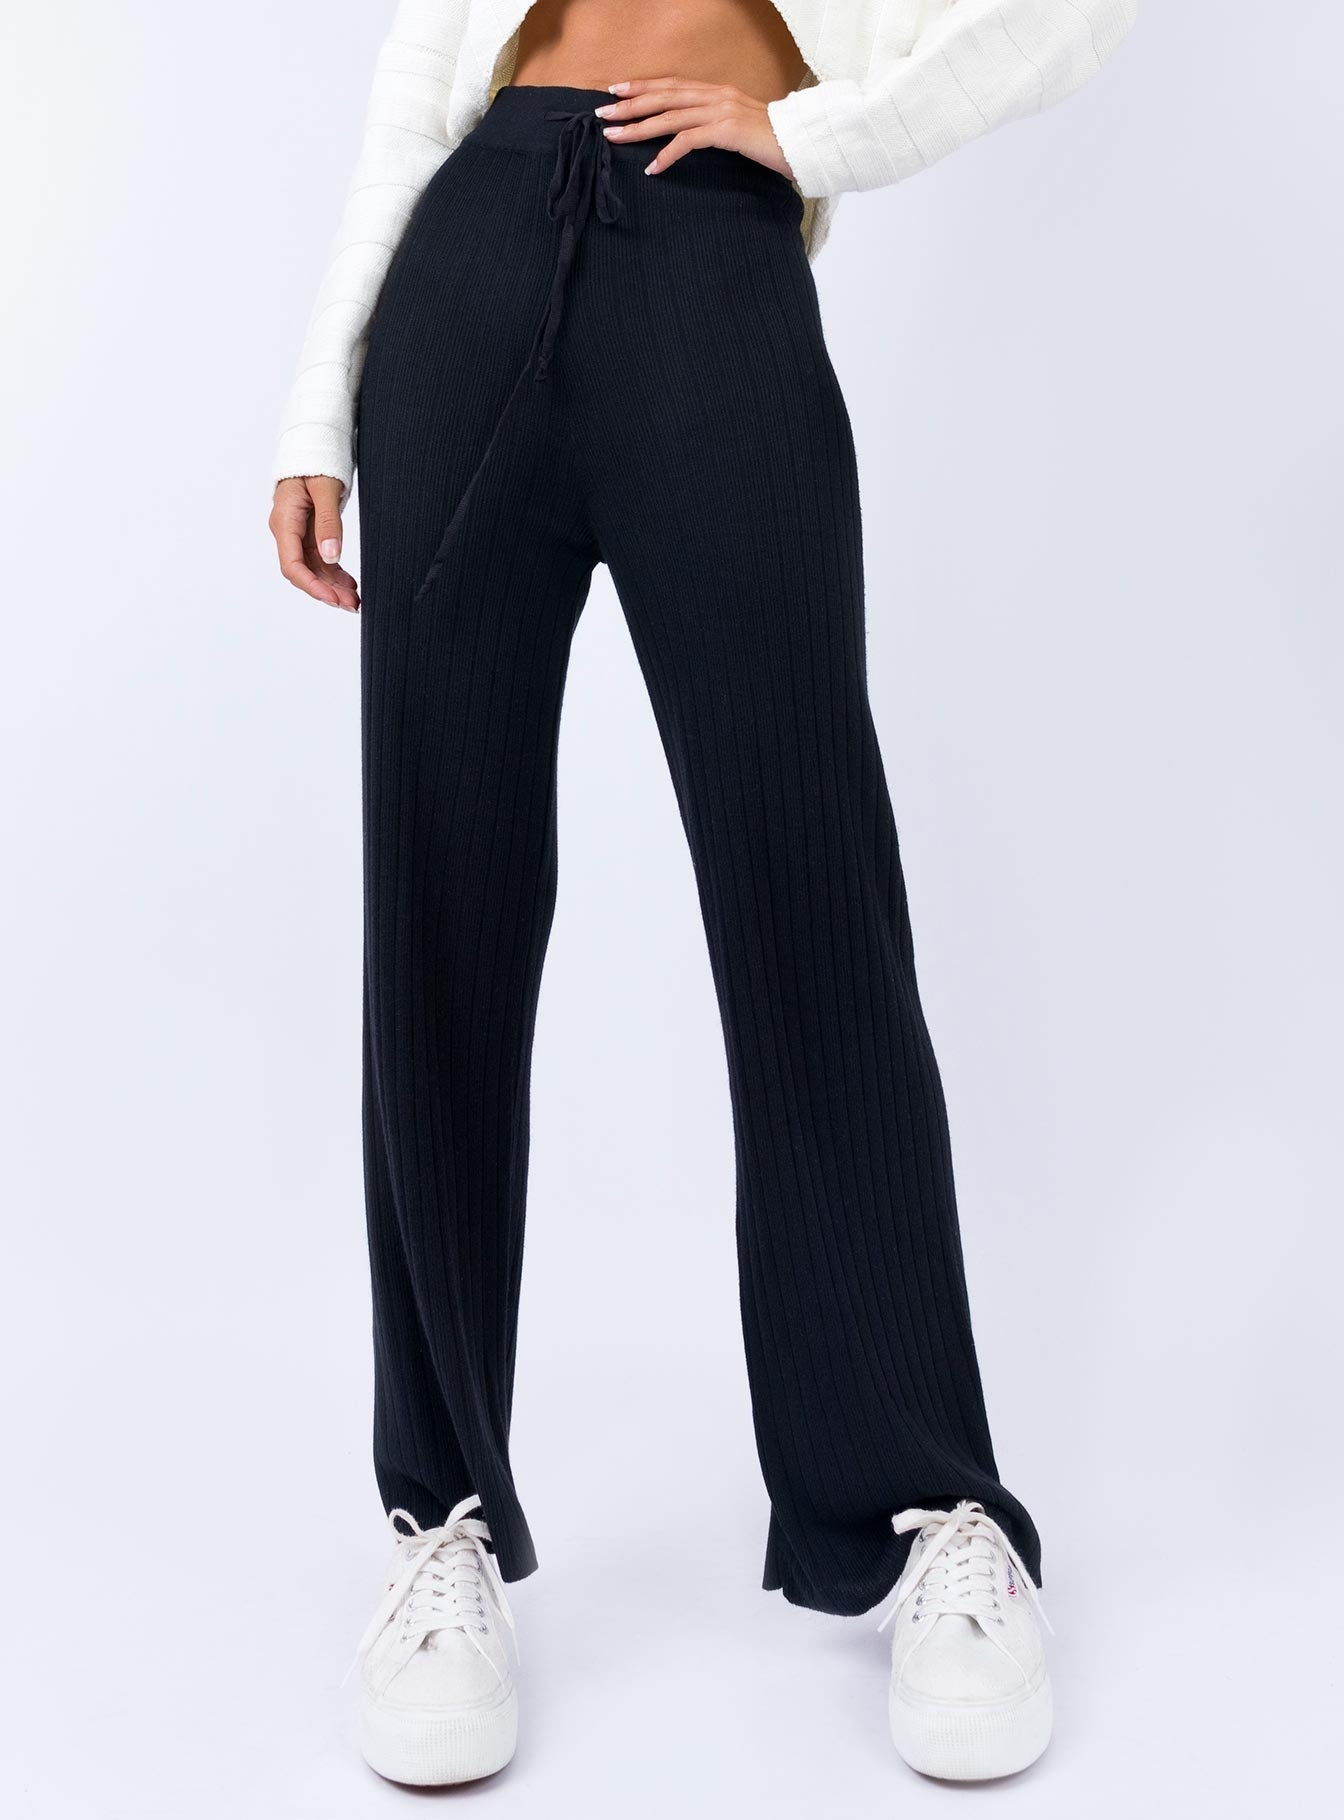 Majid Pants Black